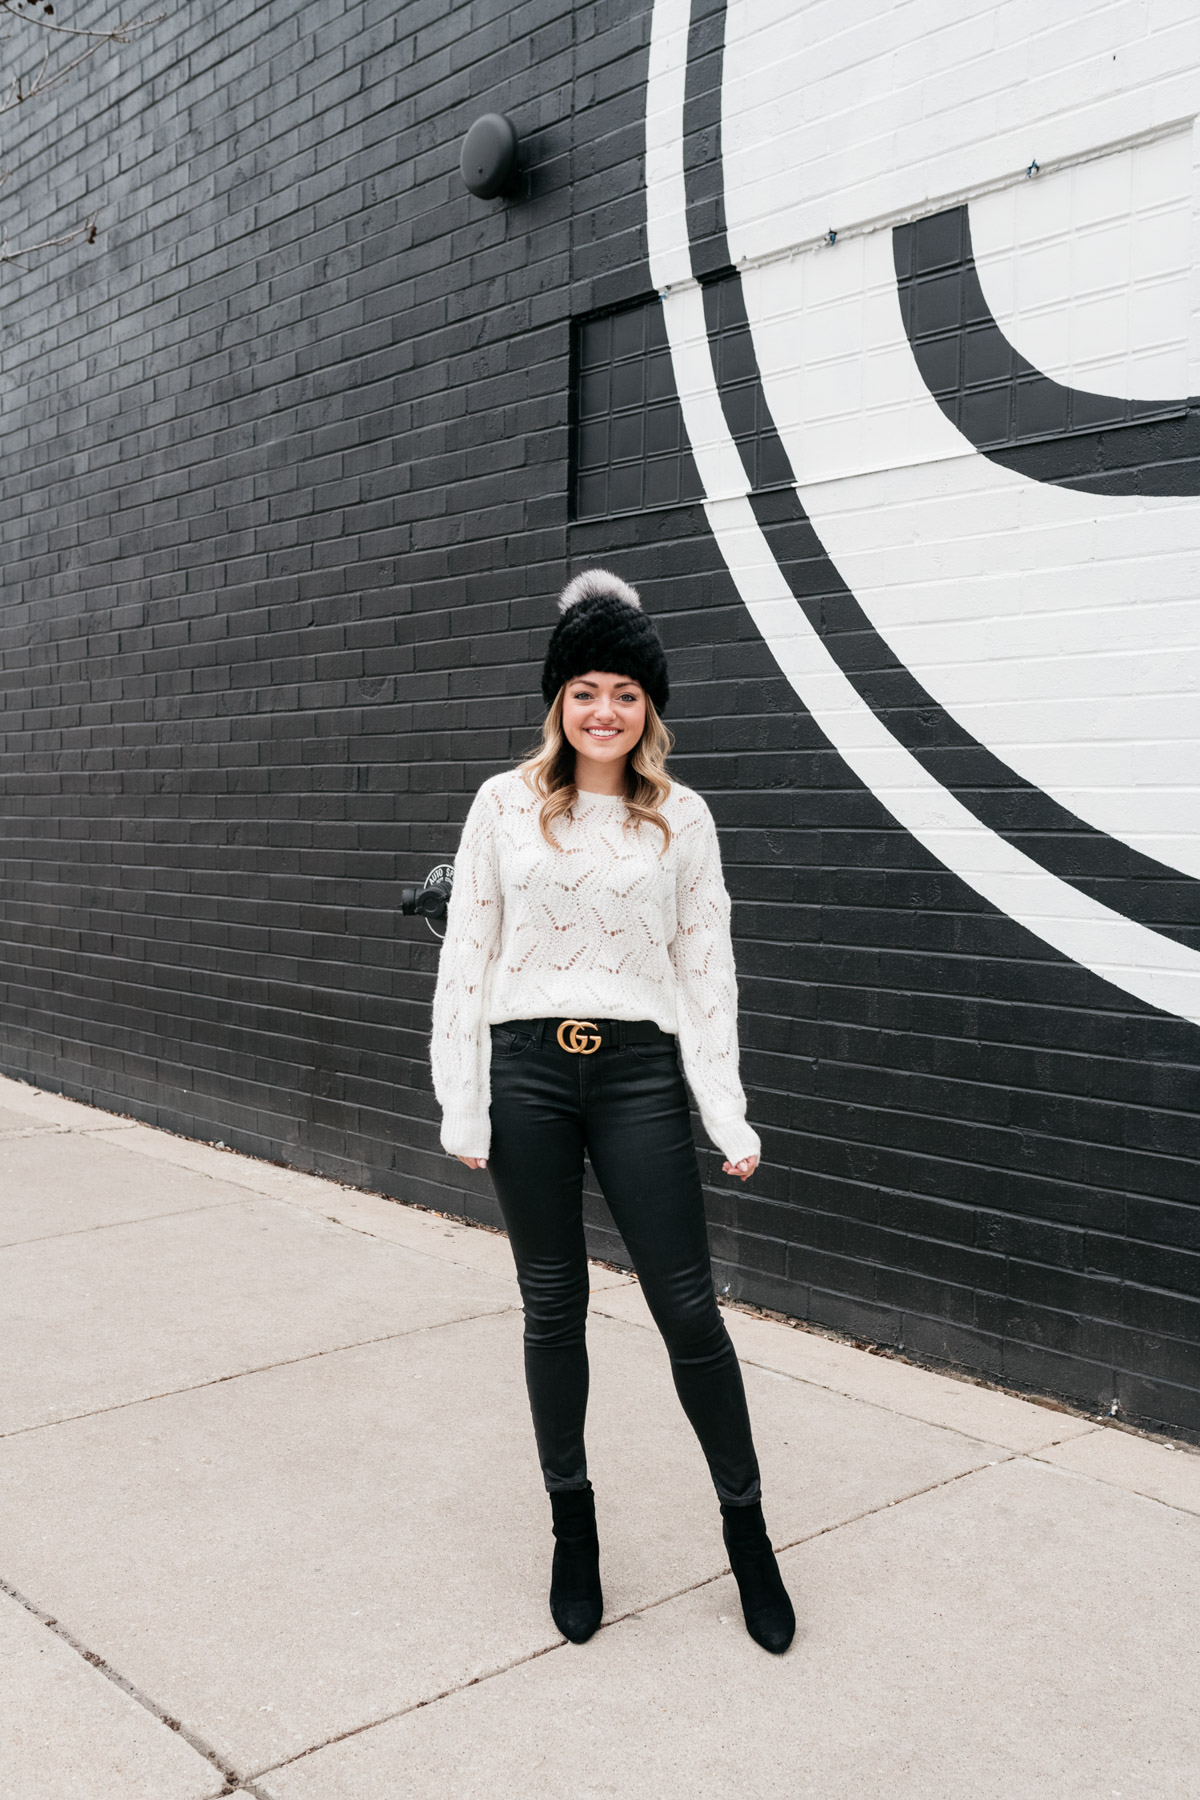 Chicago fashion blogger Jessica Sturdy wearing a fur beanie, Nordstrom sweater, a Gucci belt, coated black jeans, and heeled ankle booties.